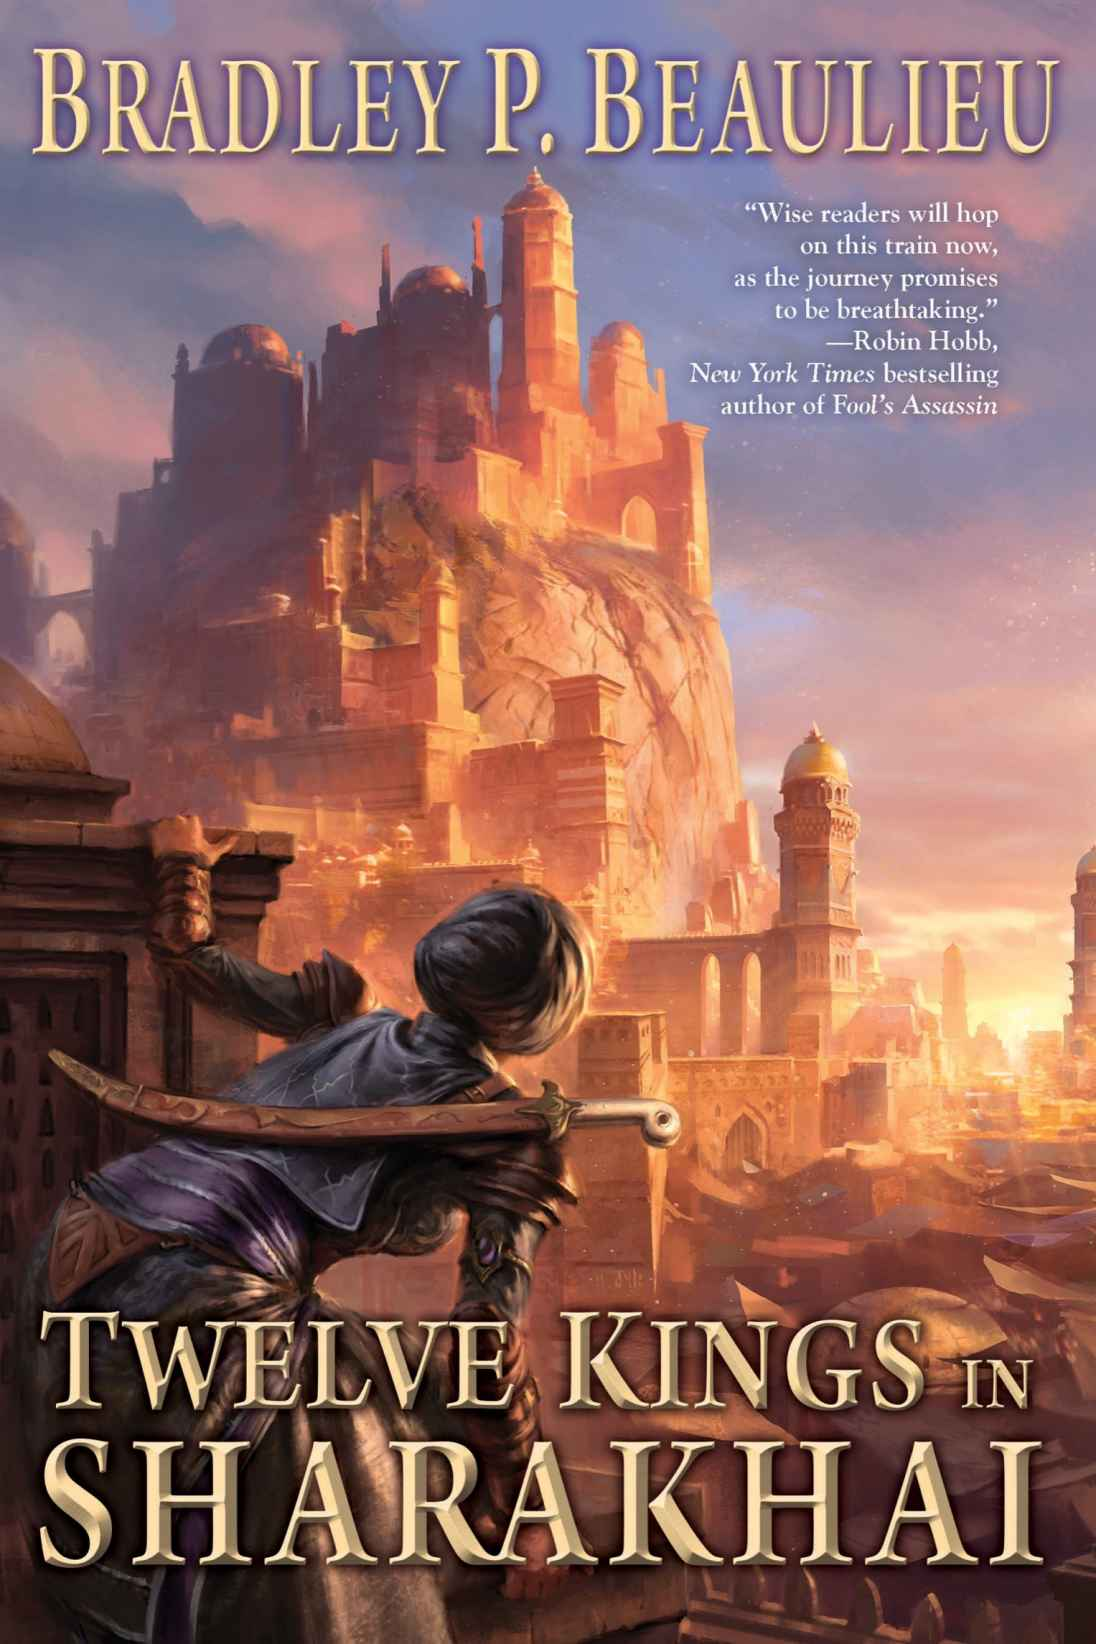 Twelve Kings in Sharakhai by Bradley P. Beaulieu (The Song of the Shattered Sands #1)